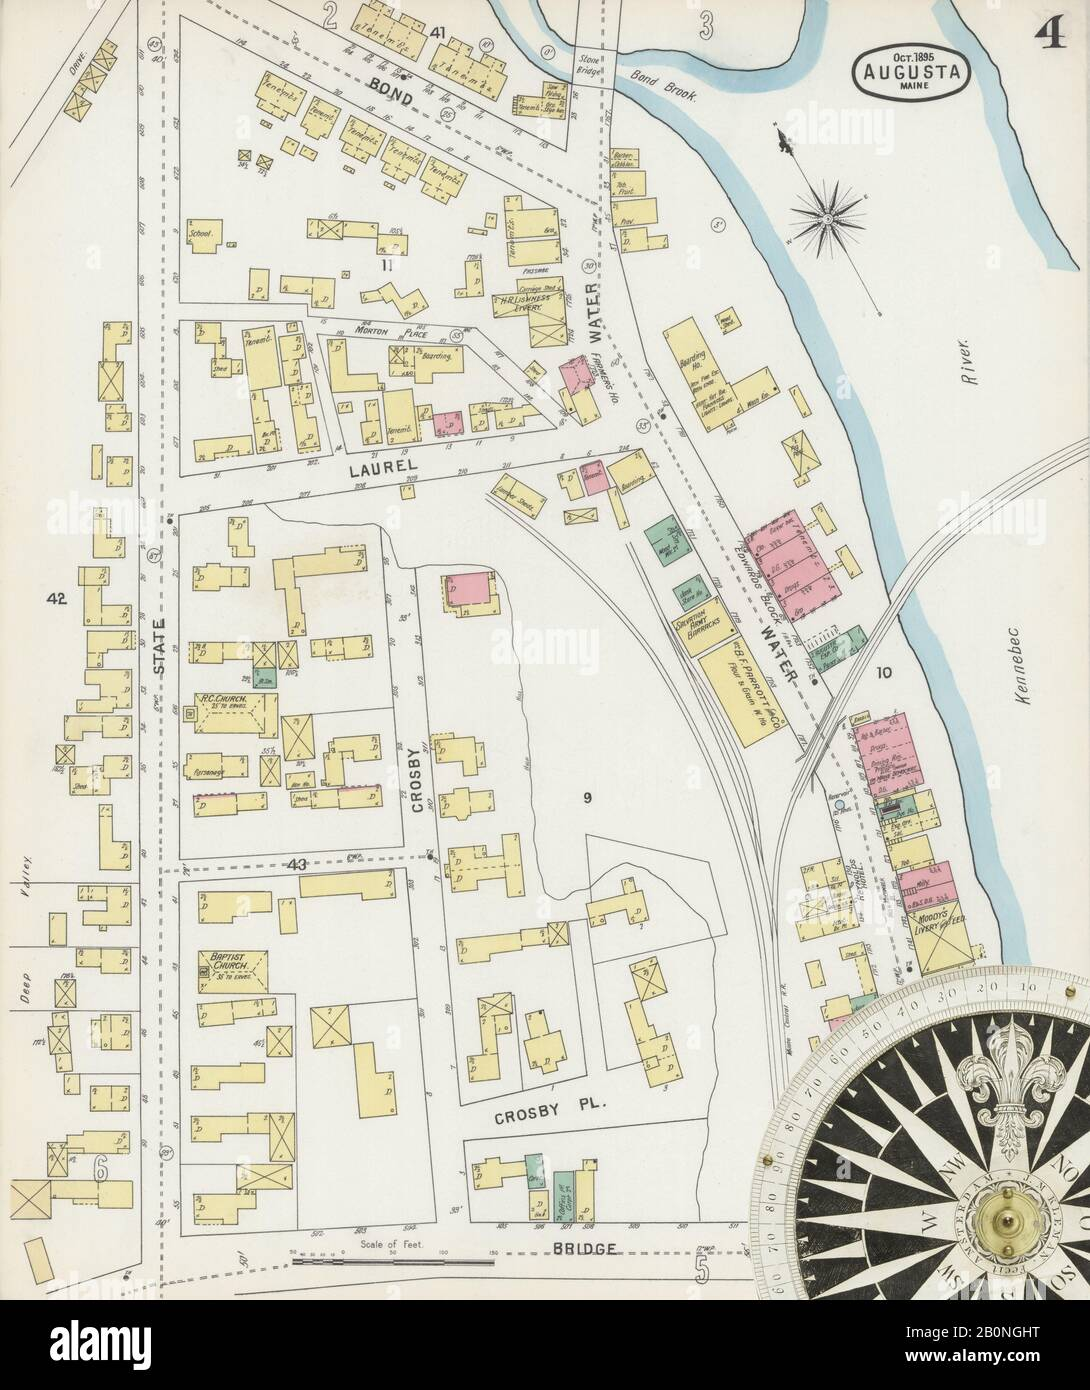 Image 4 of Sanborn Fire Insurance Map from Augusta, Kennebec County, Maine. Oct 1895. 13 Sheet(s), America, street map with a Nineteenth Century compass Stock Photo